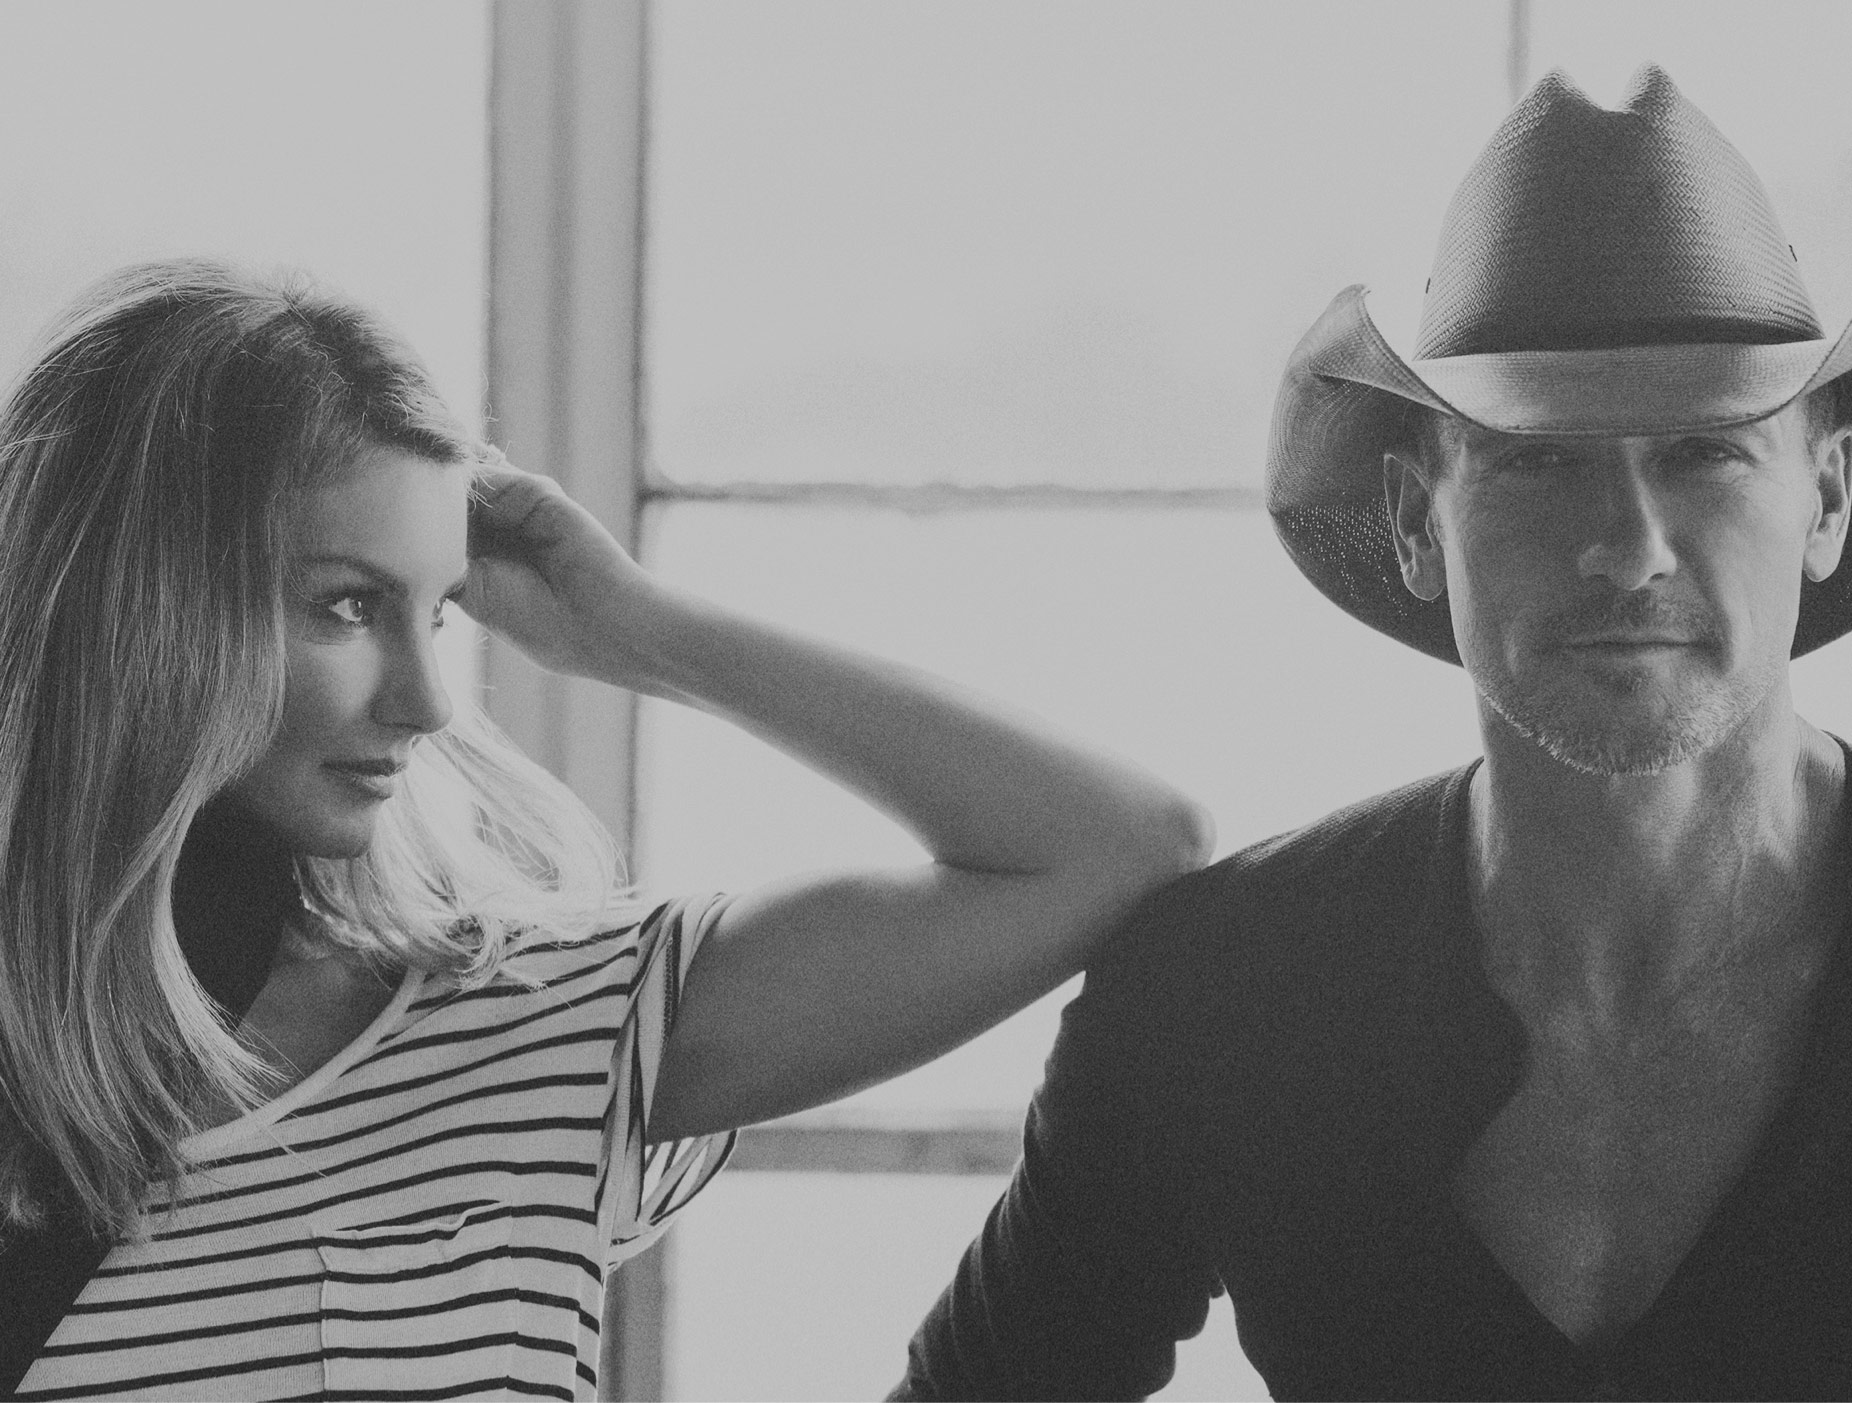 Faith Hill & Tim McGraw to headline C2C 2018